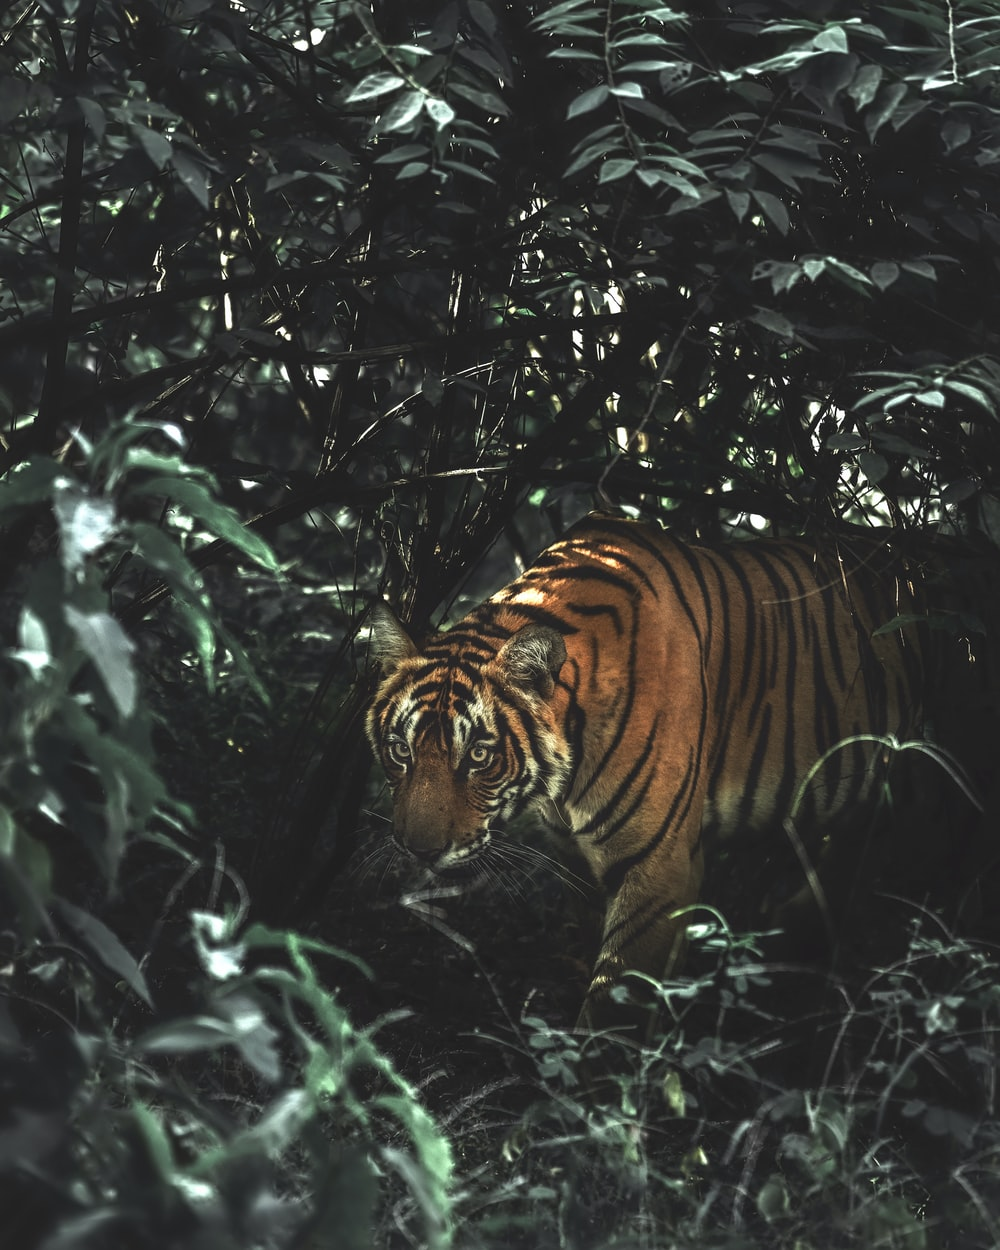 tiger in forest during daytime